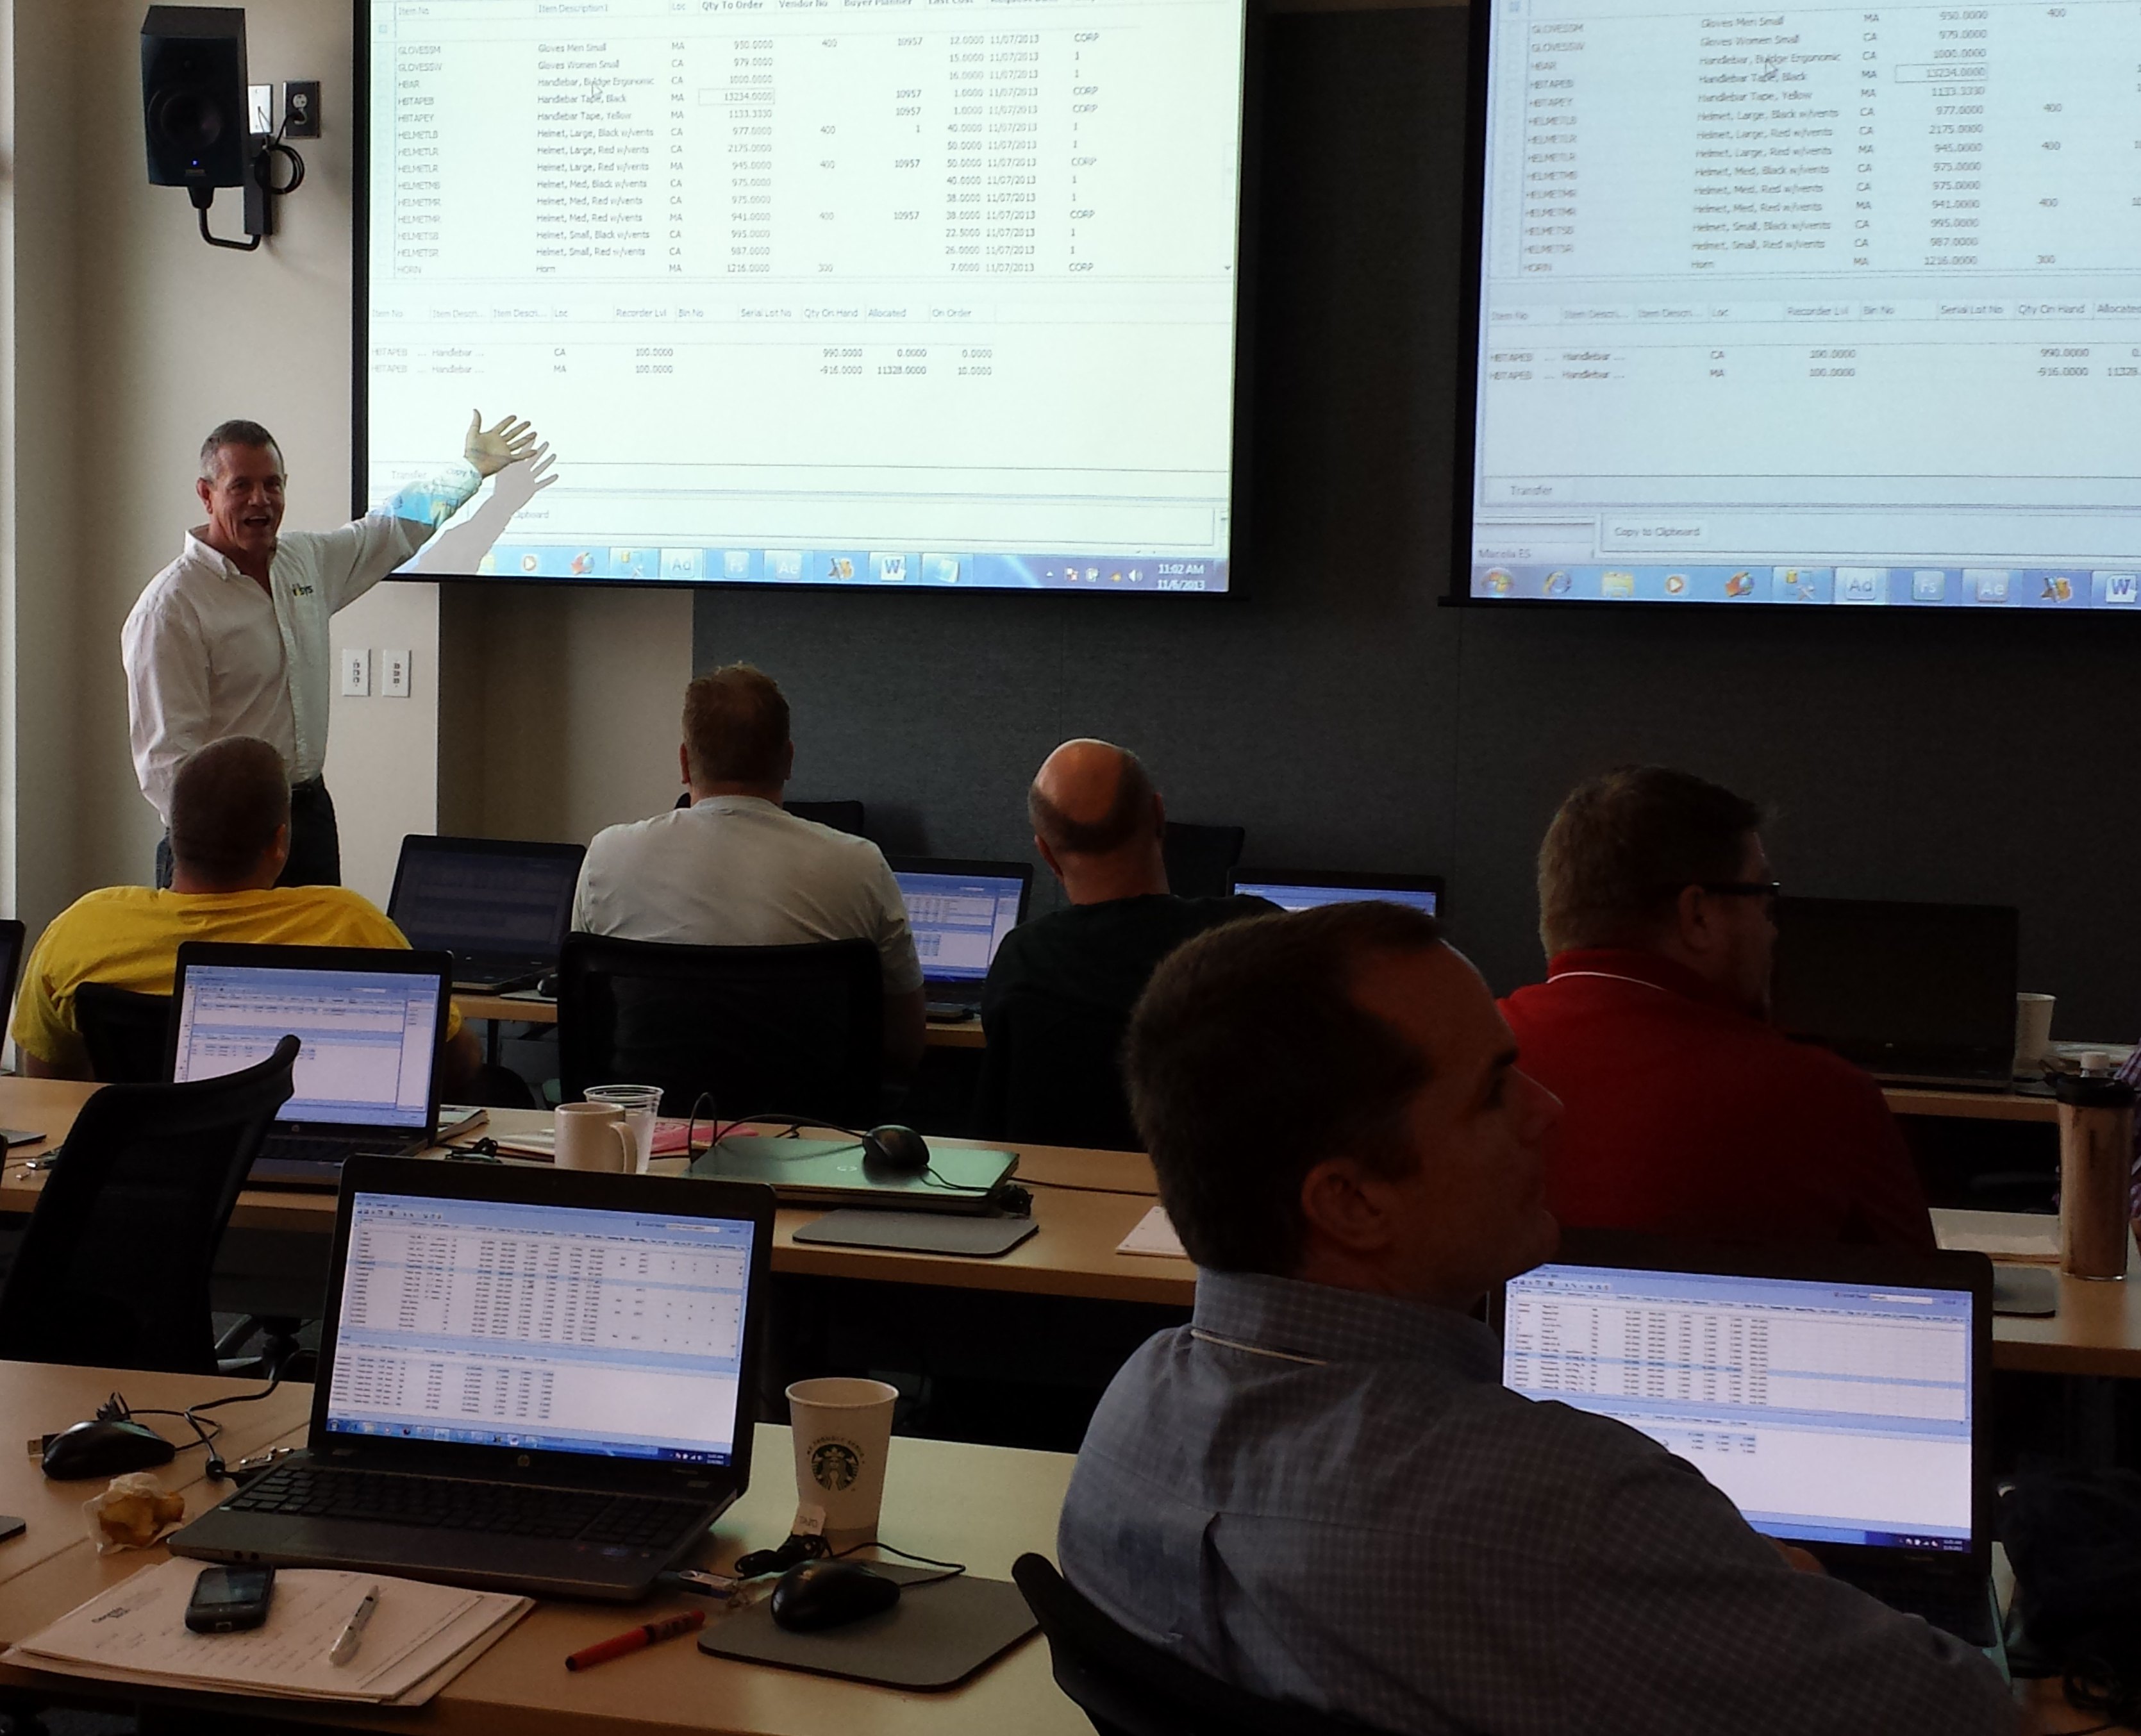 WiSys Hosts Advanced Training for Customers and Partners